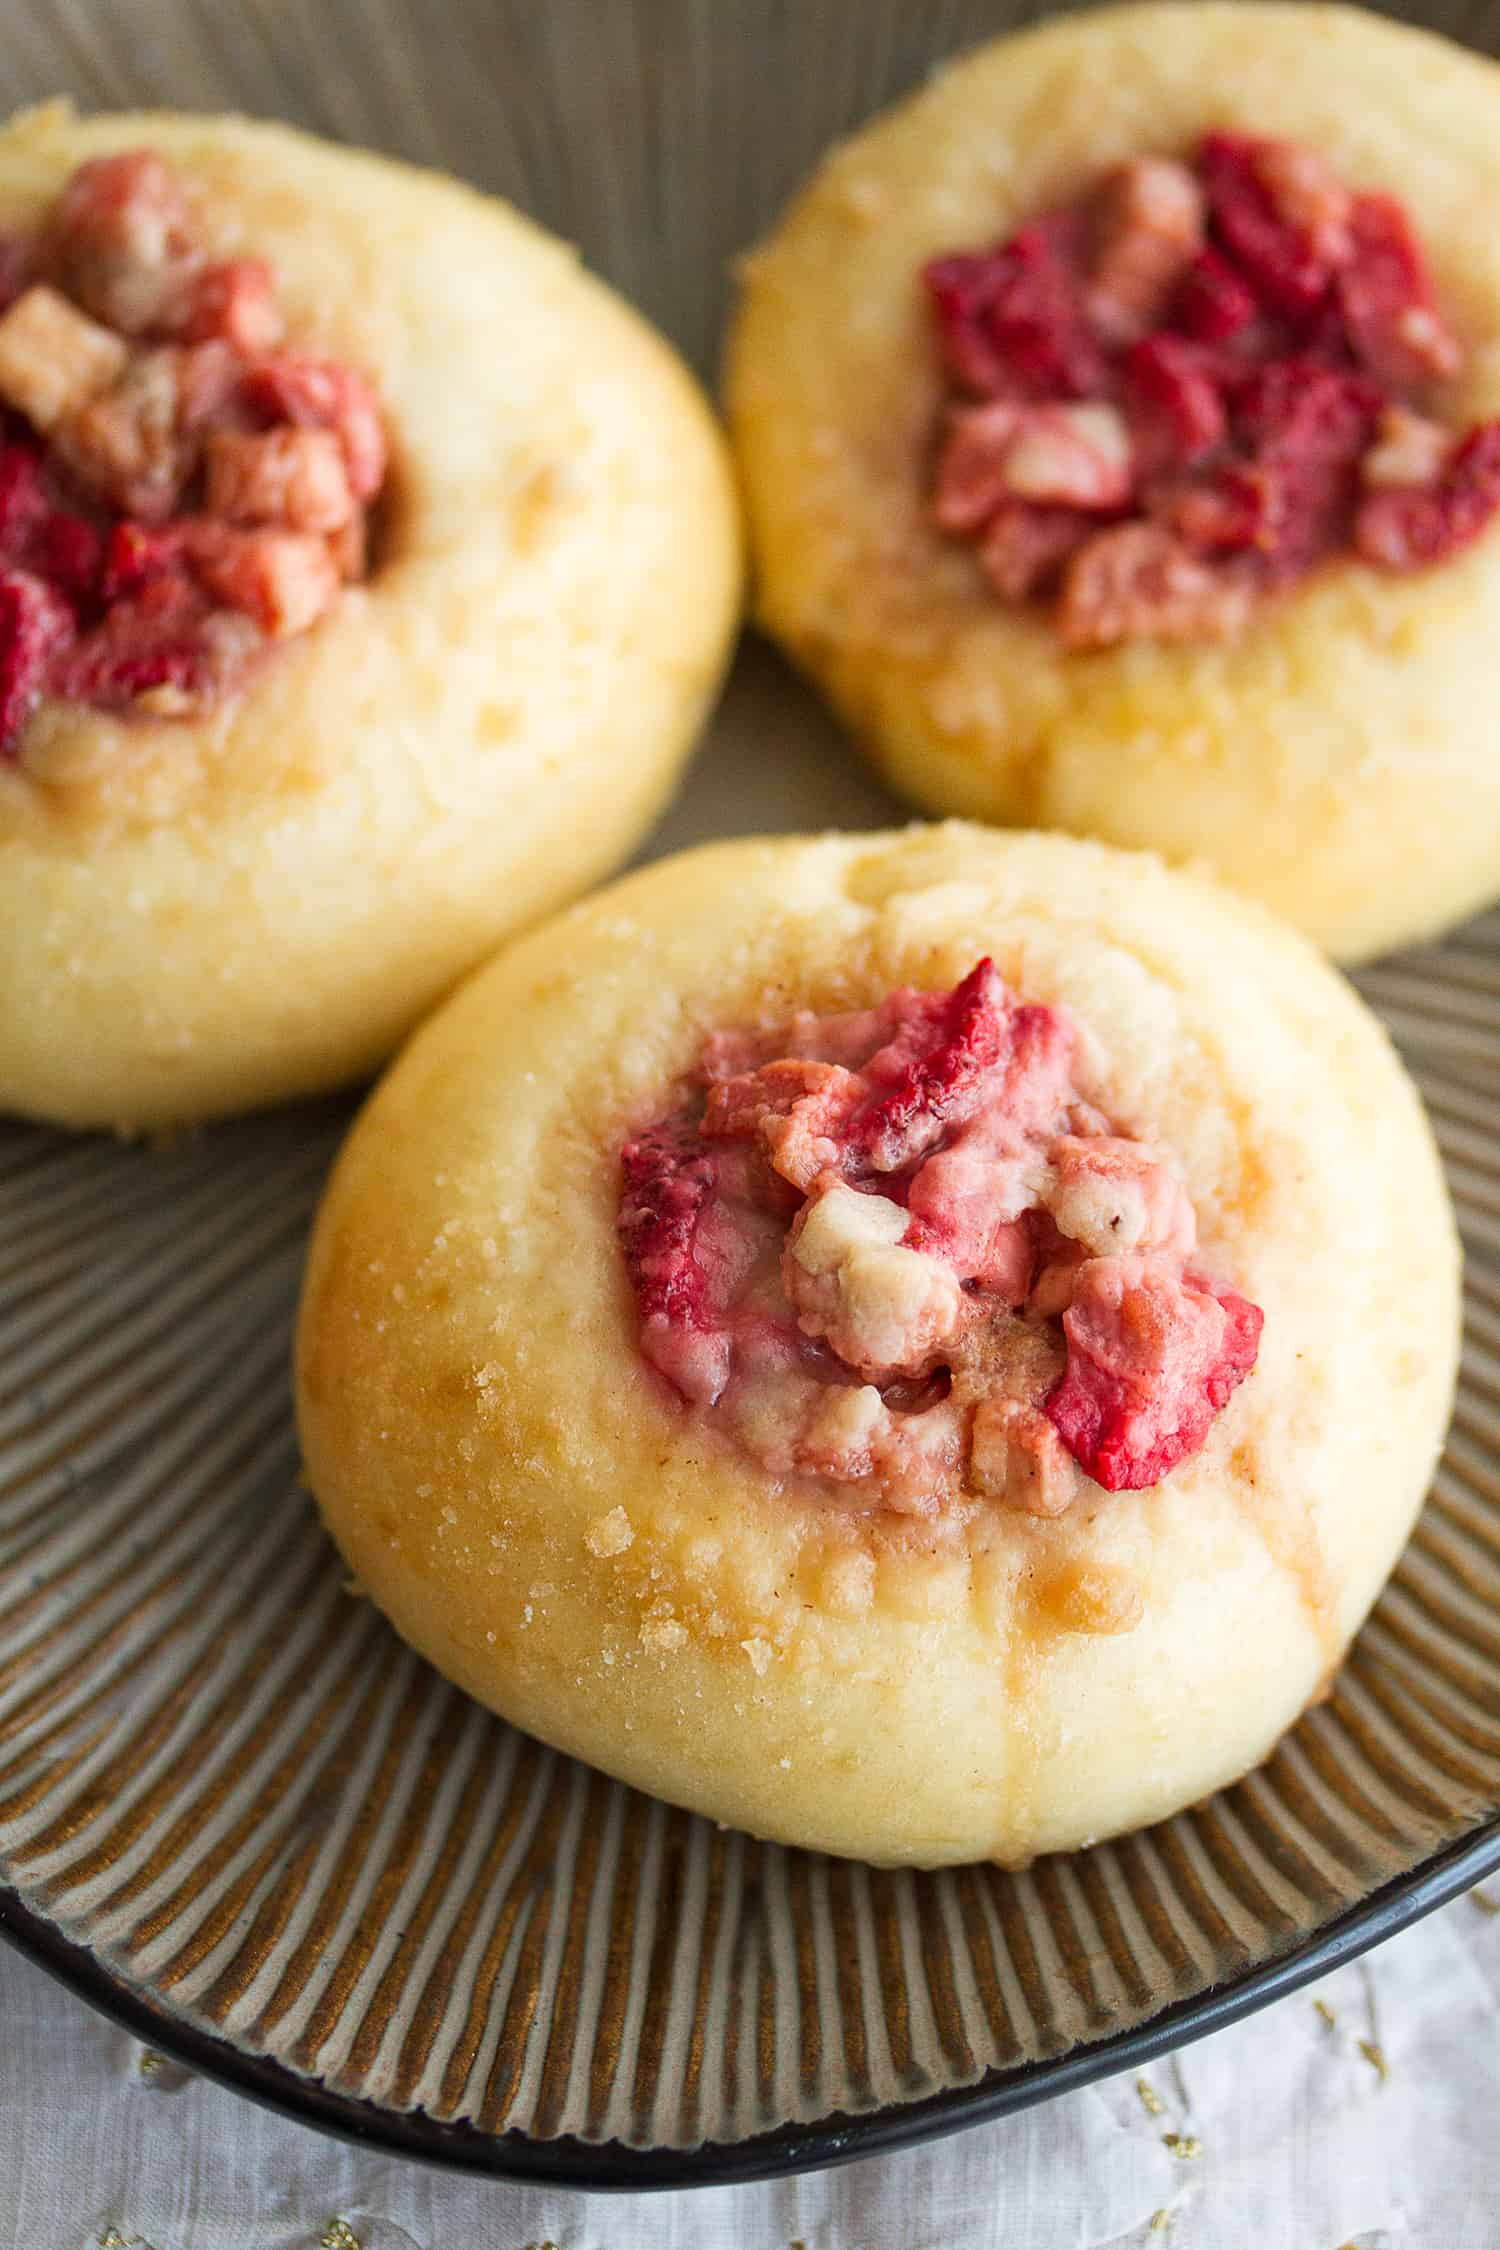 Berried Treasures: Strawberry Rhubarb Streusel Buns